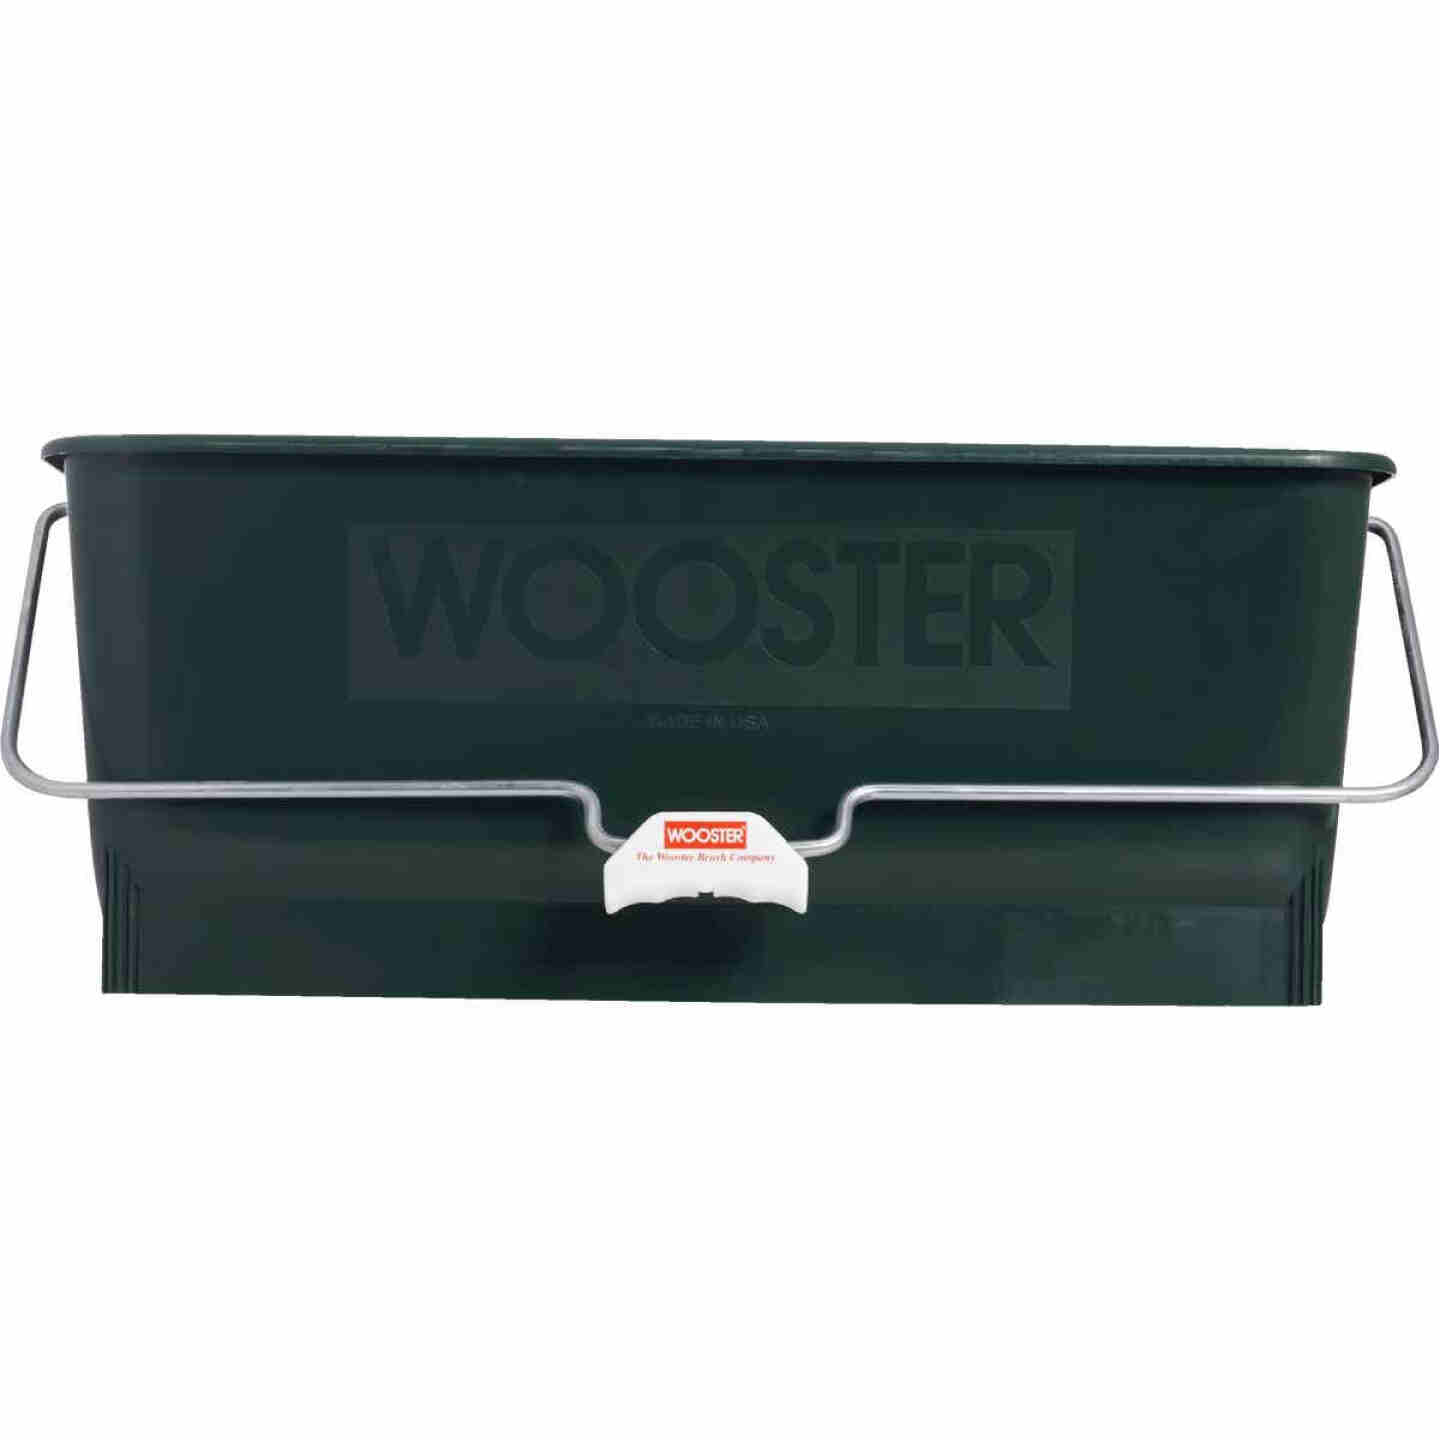 Wooster Wide Boy 5 Gal. Green Painter's Bucket Image 2